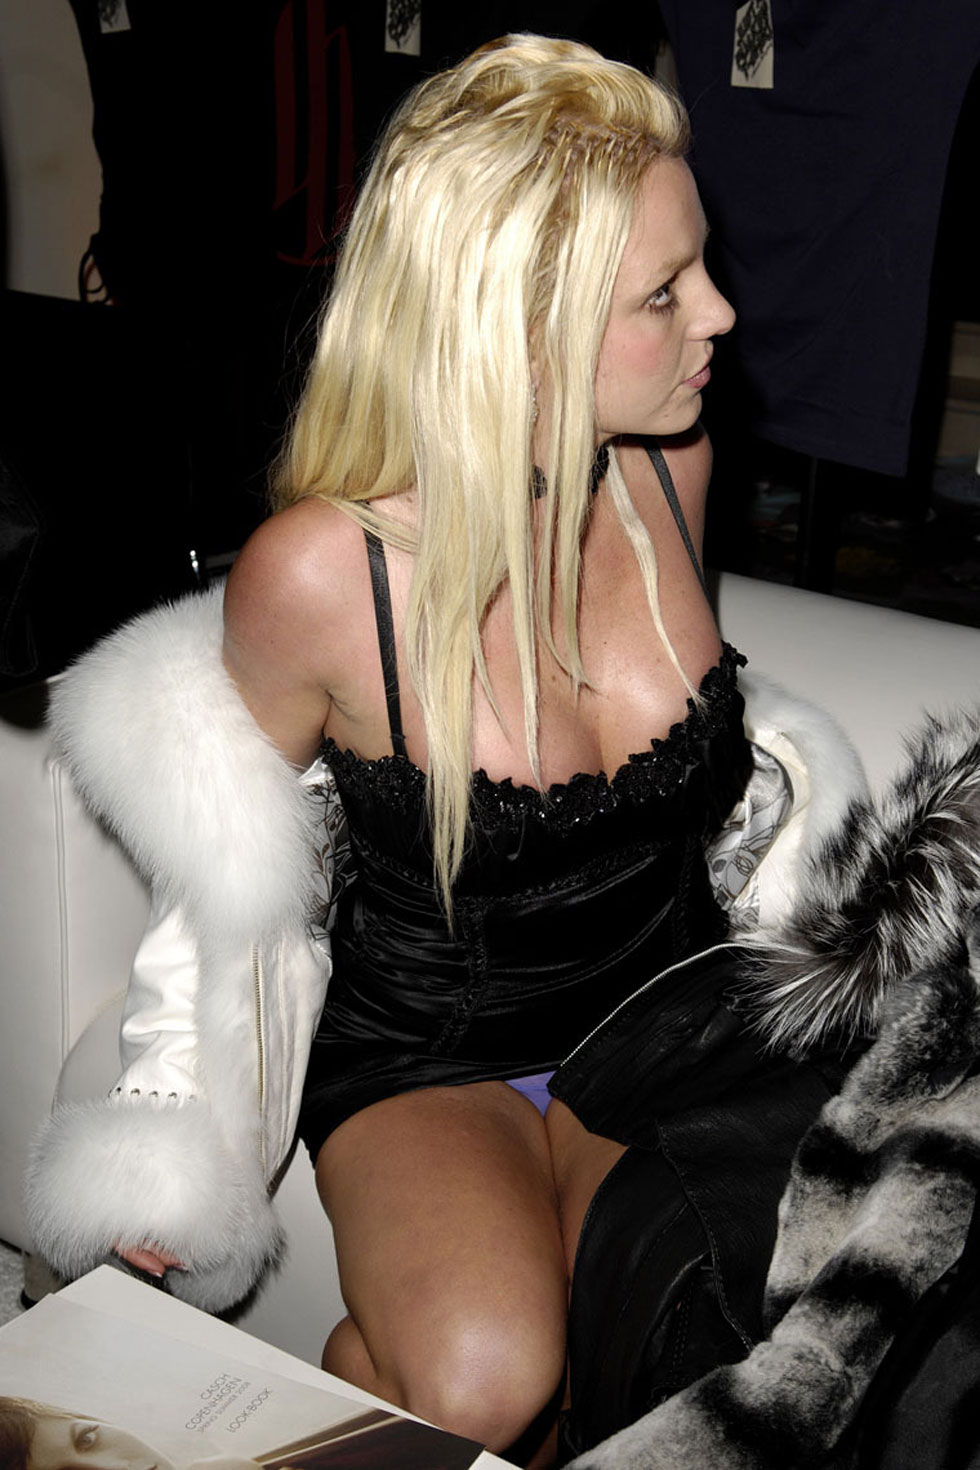 celebrity upskirt4 Ms Krazie Nude Pics Free. Ms Krazie Nude Pics Free. My pulse and heart were ...